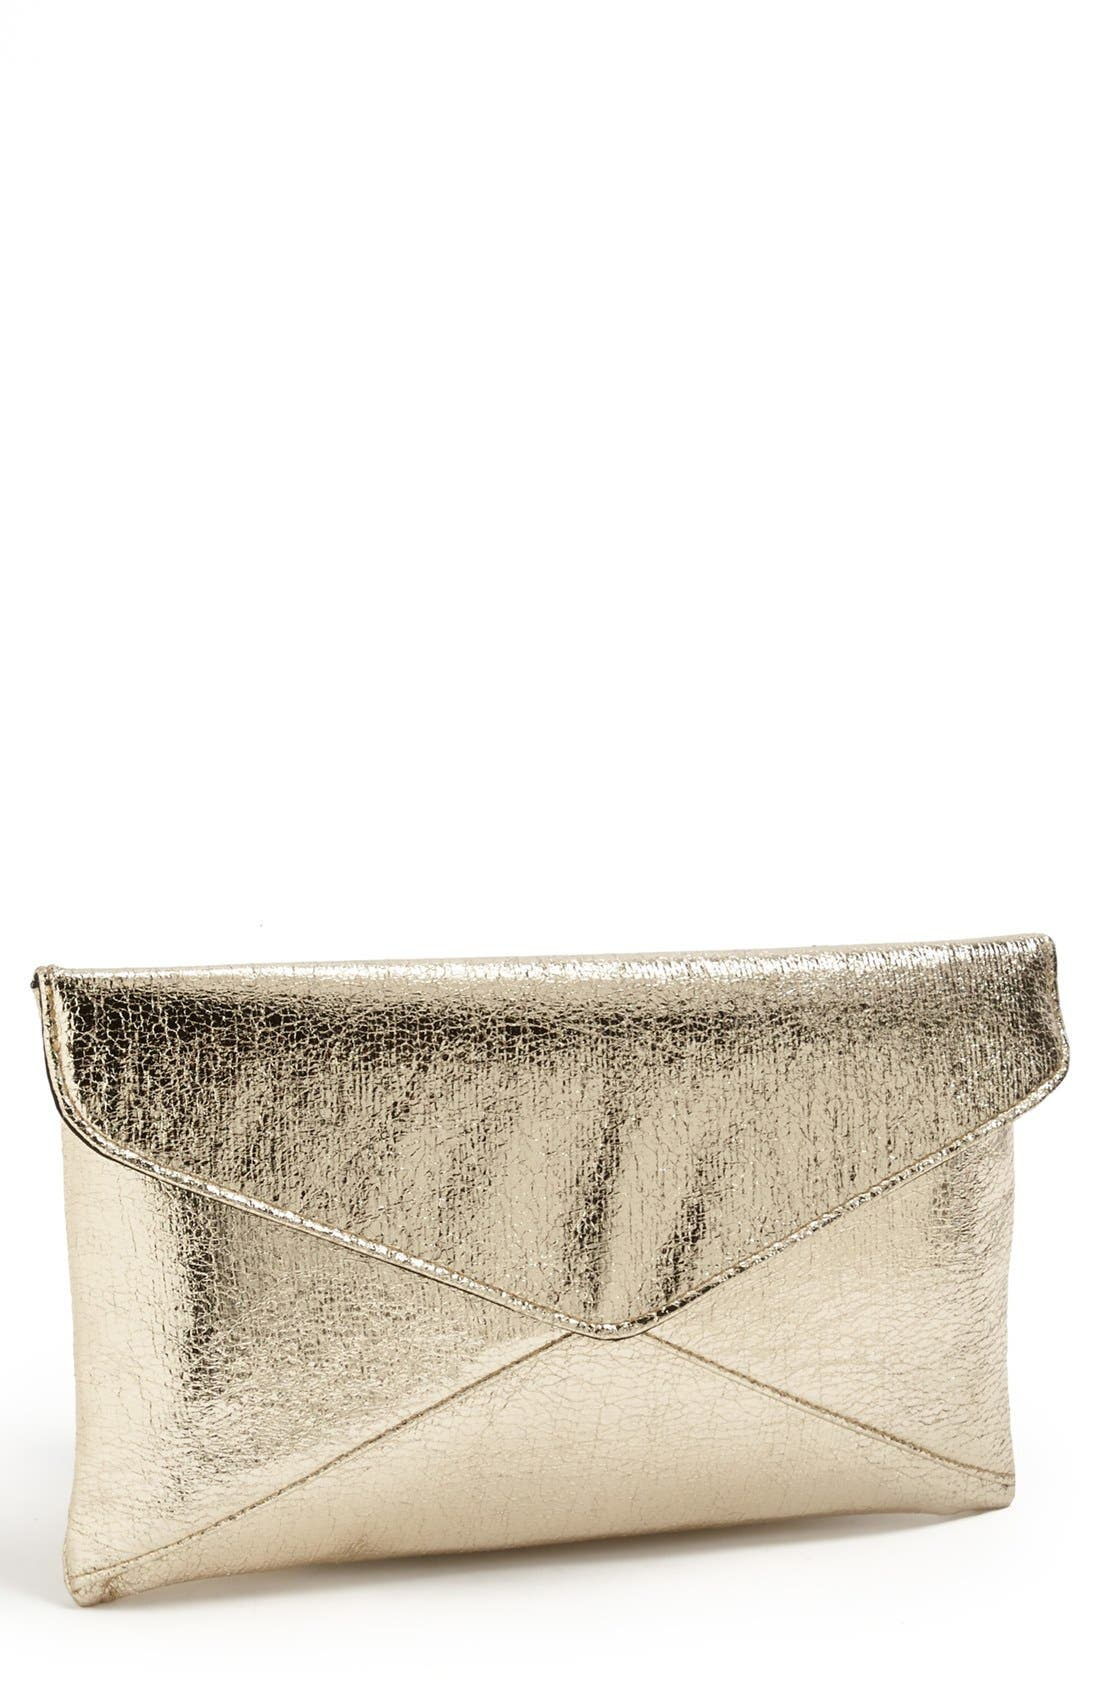 Alternate Image 1 Selected - Expressions NYC 'Crackle' Envelope Clutch